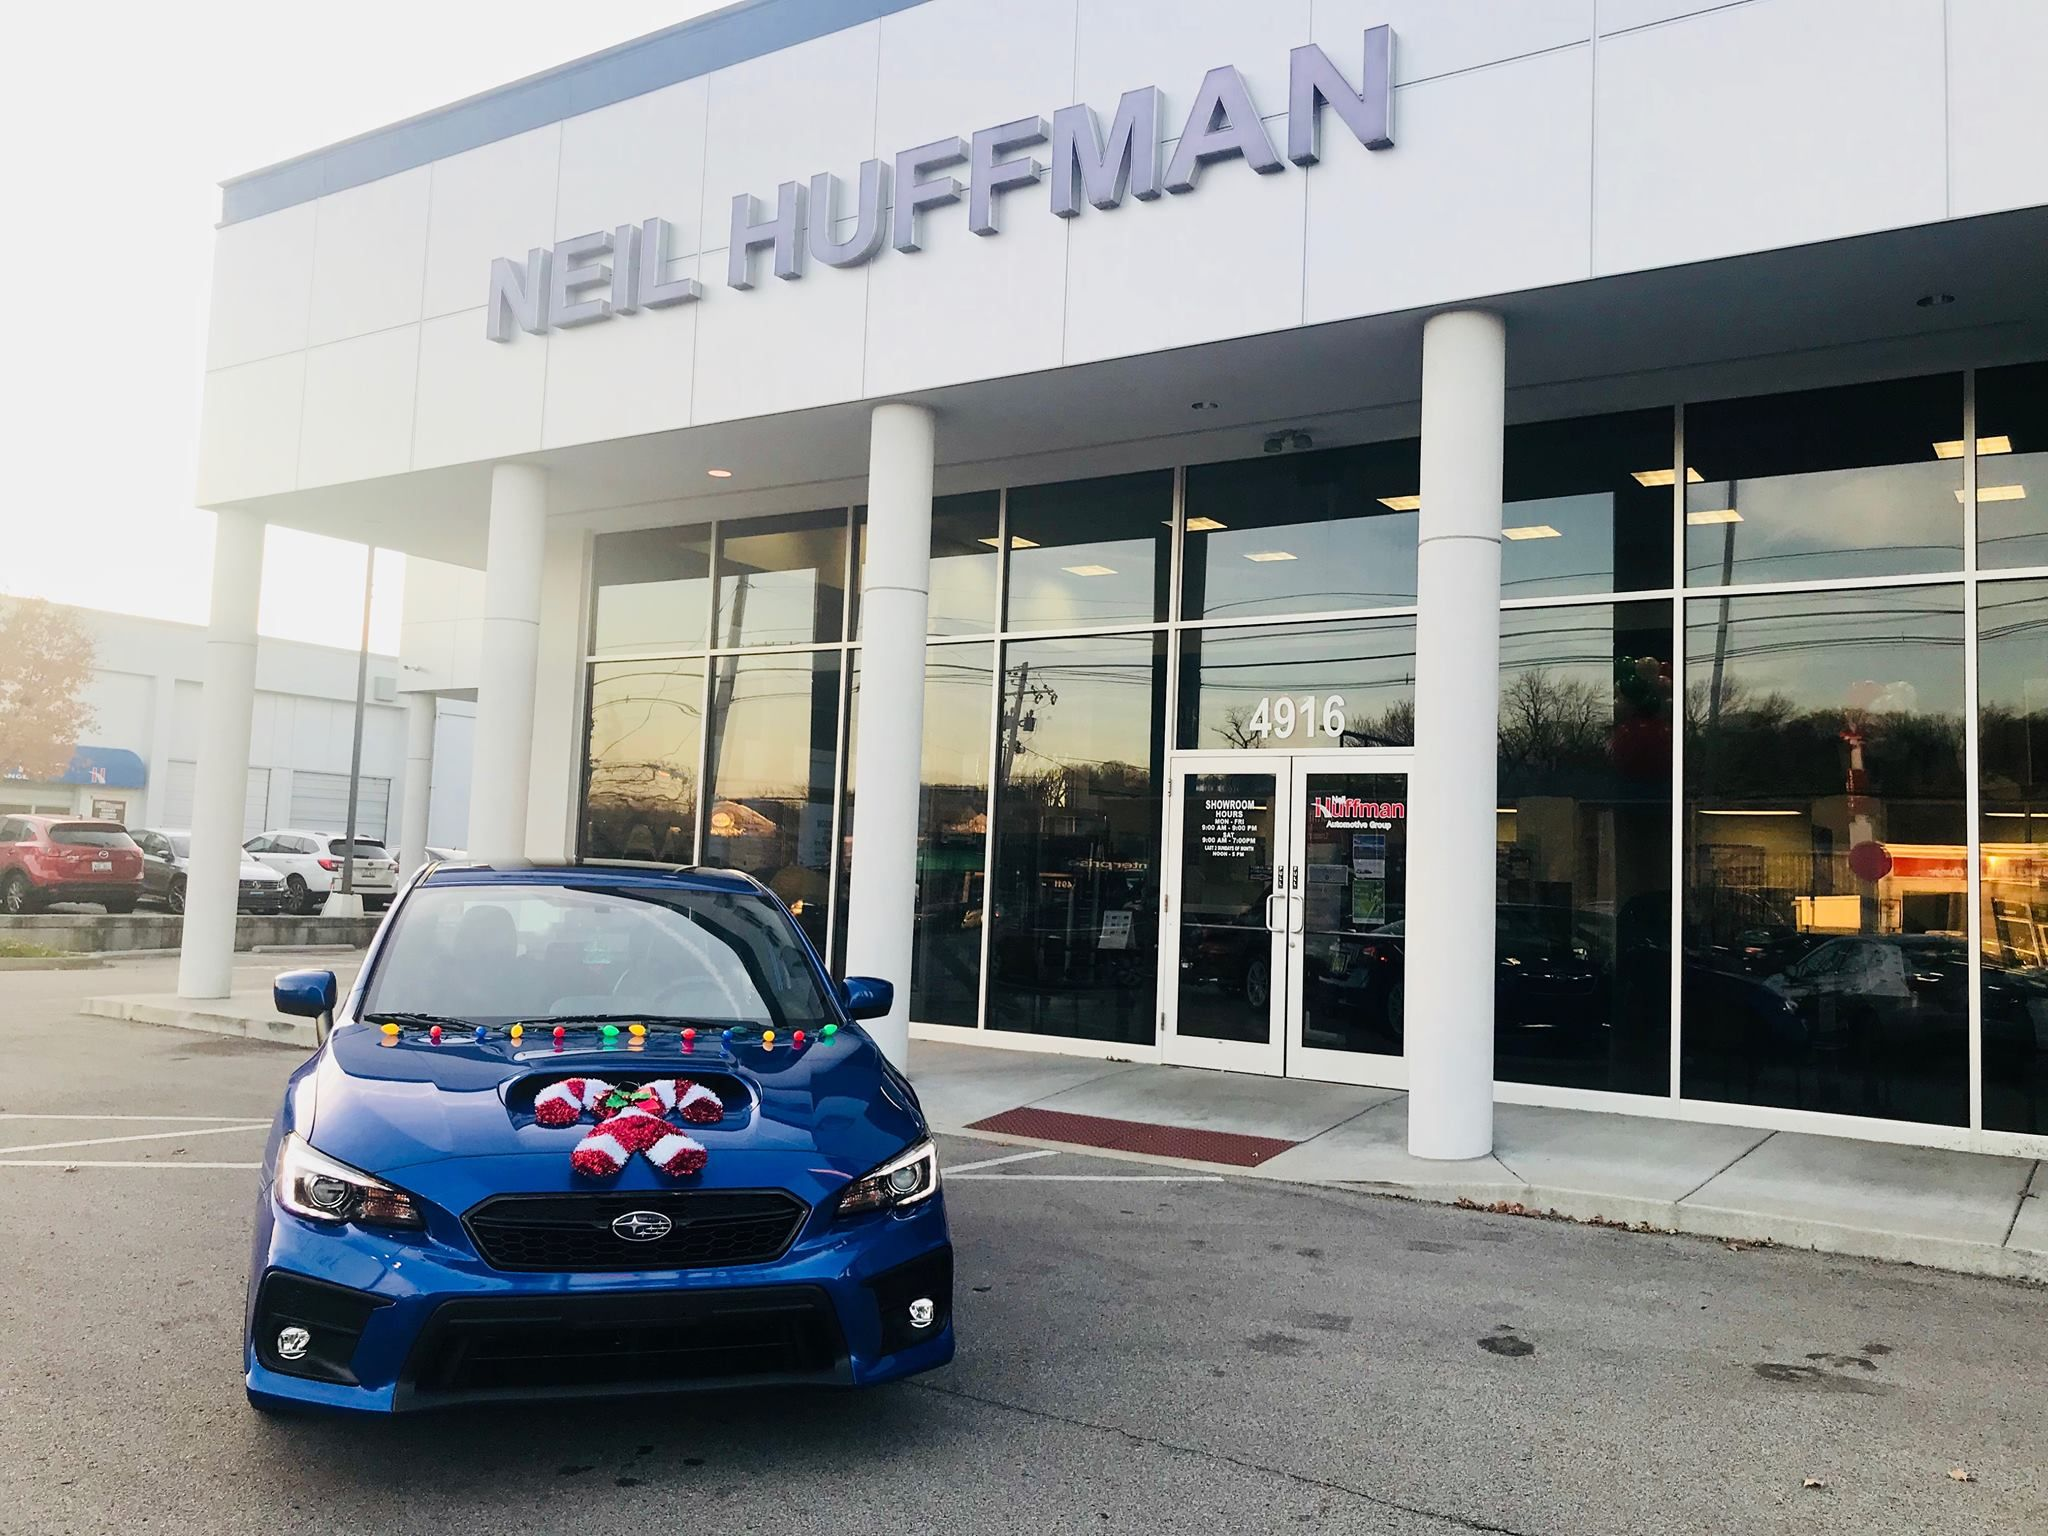 Our retailers are ting in the WRXmas spirit thanks Neil Huffman